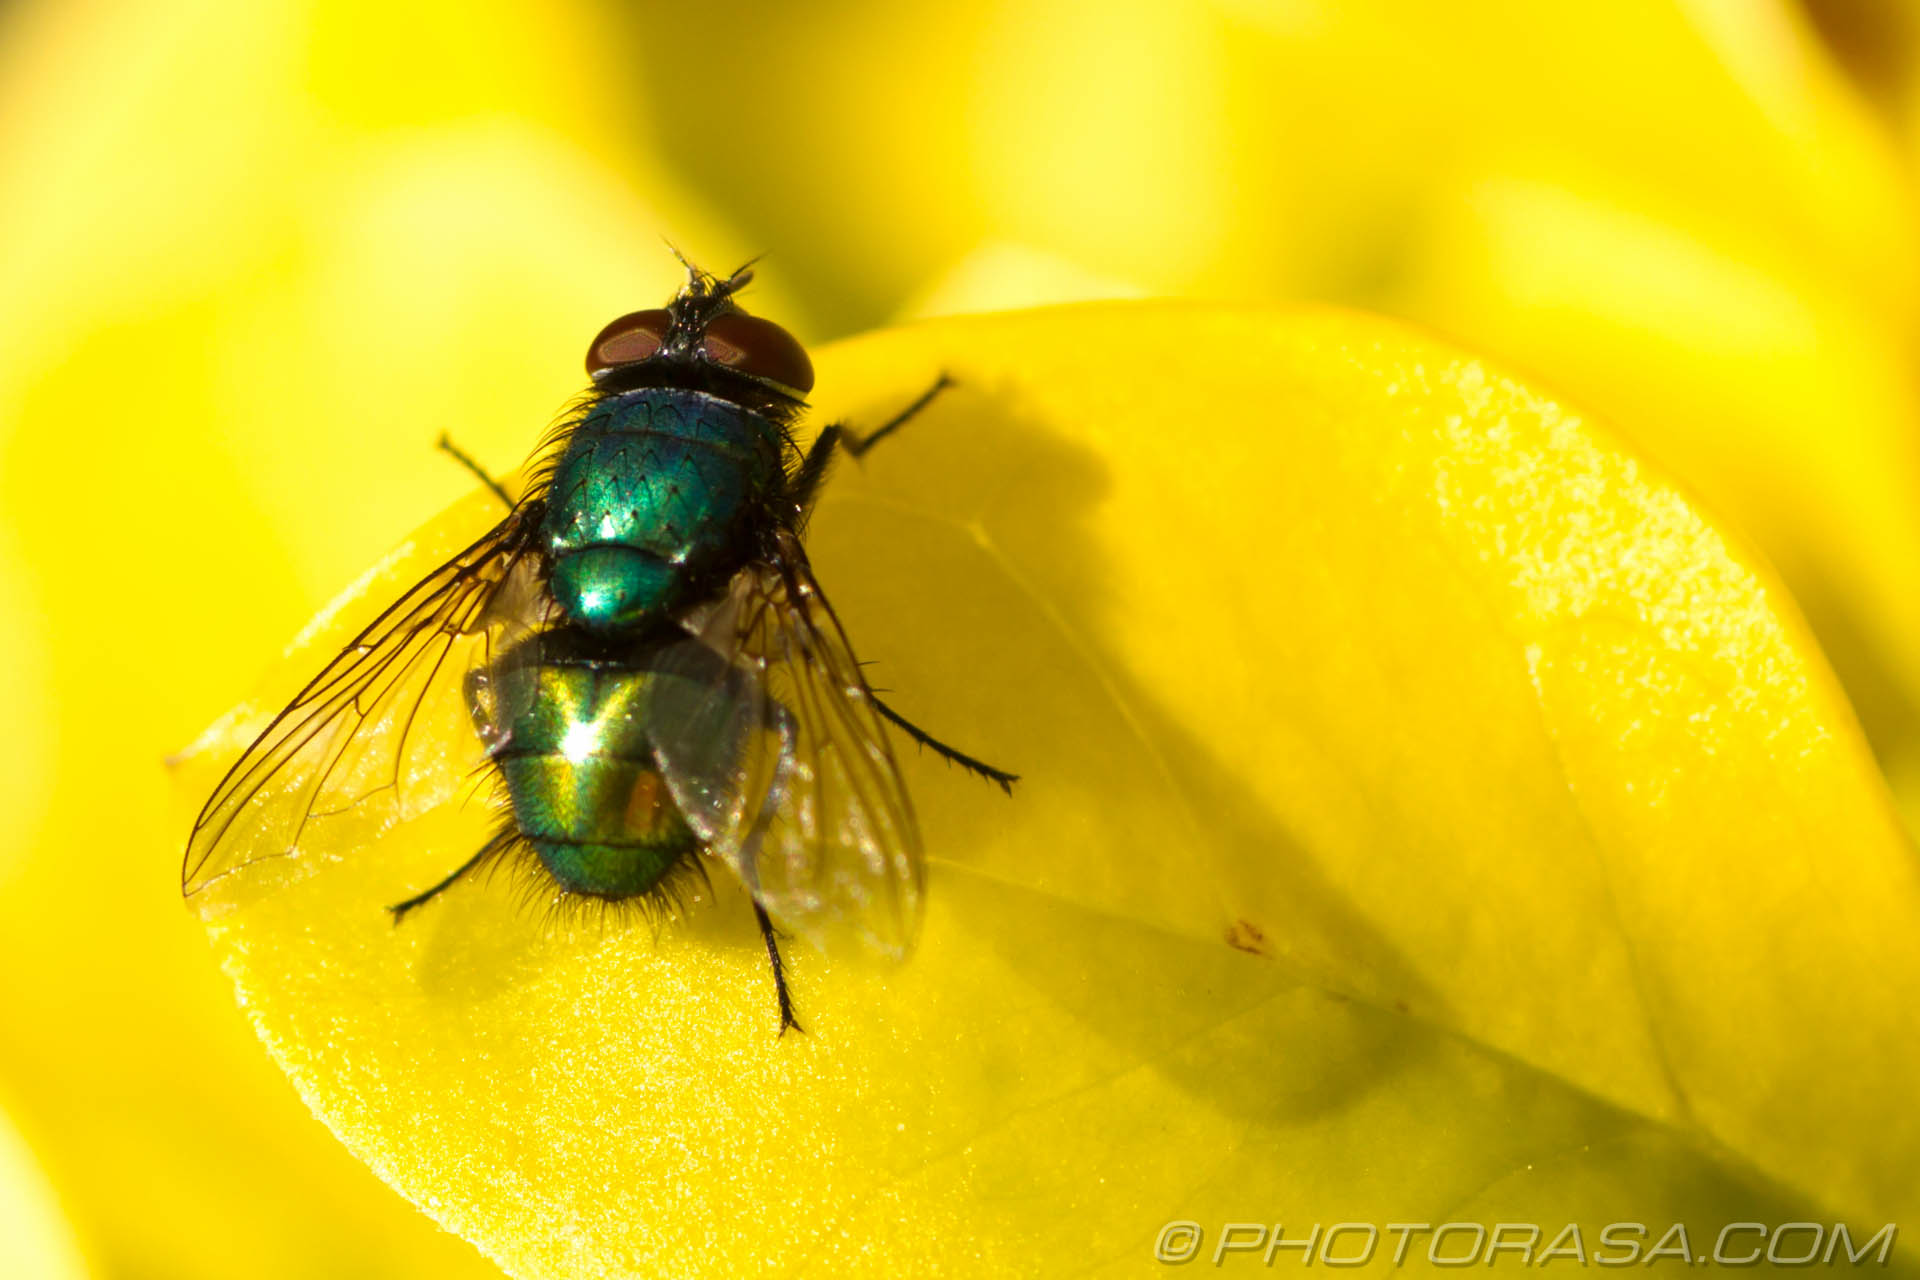 http://photorasa.com/greenbottle-fly-yellow/greenbottle-on-yellow/